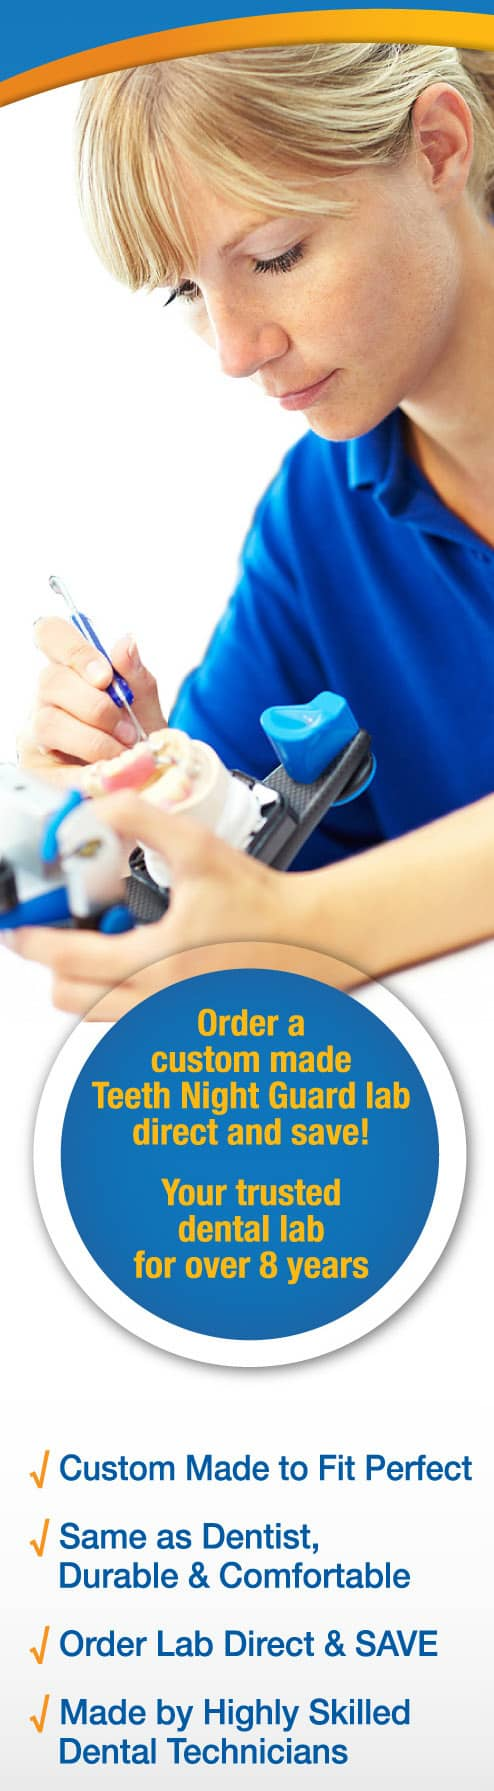 teeth night guard sparkling smiles